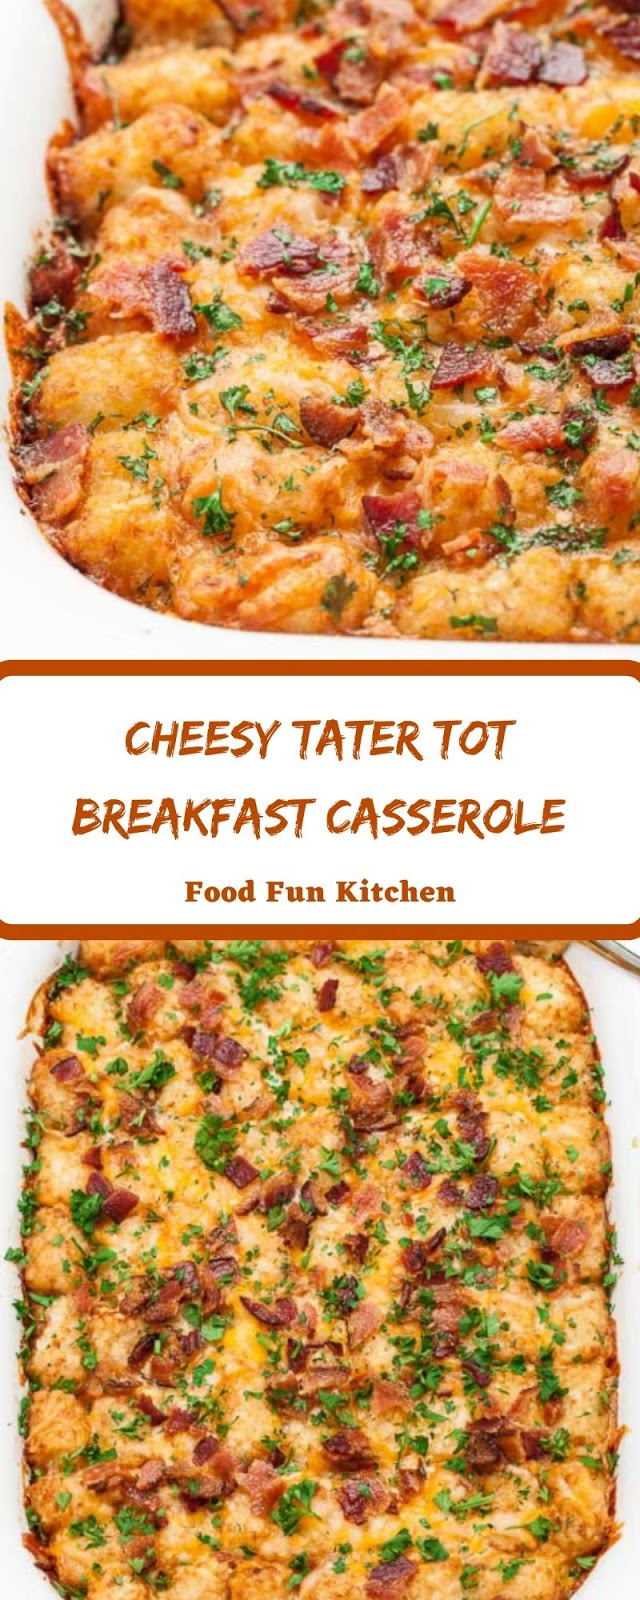 CHEESY TATER TOT BREAKFAST CASSEROLE